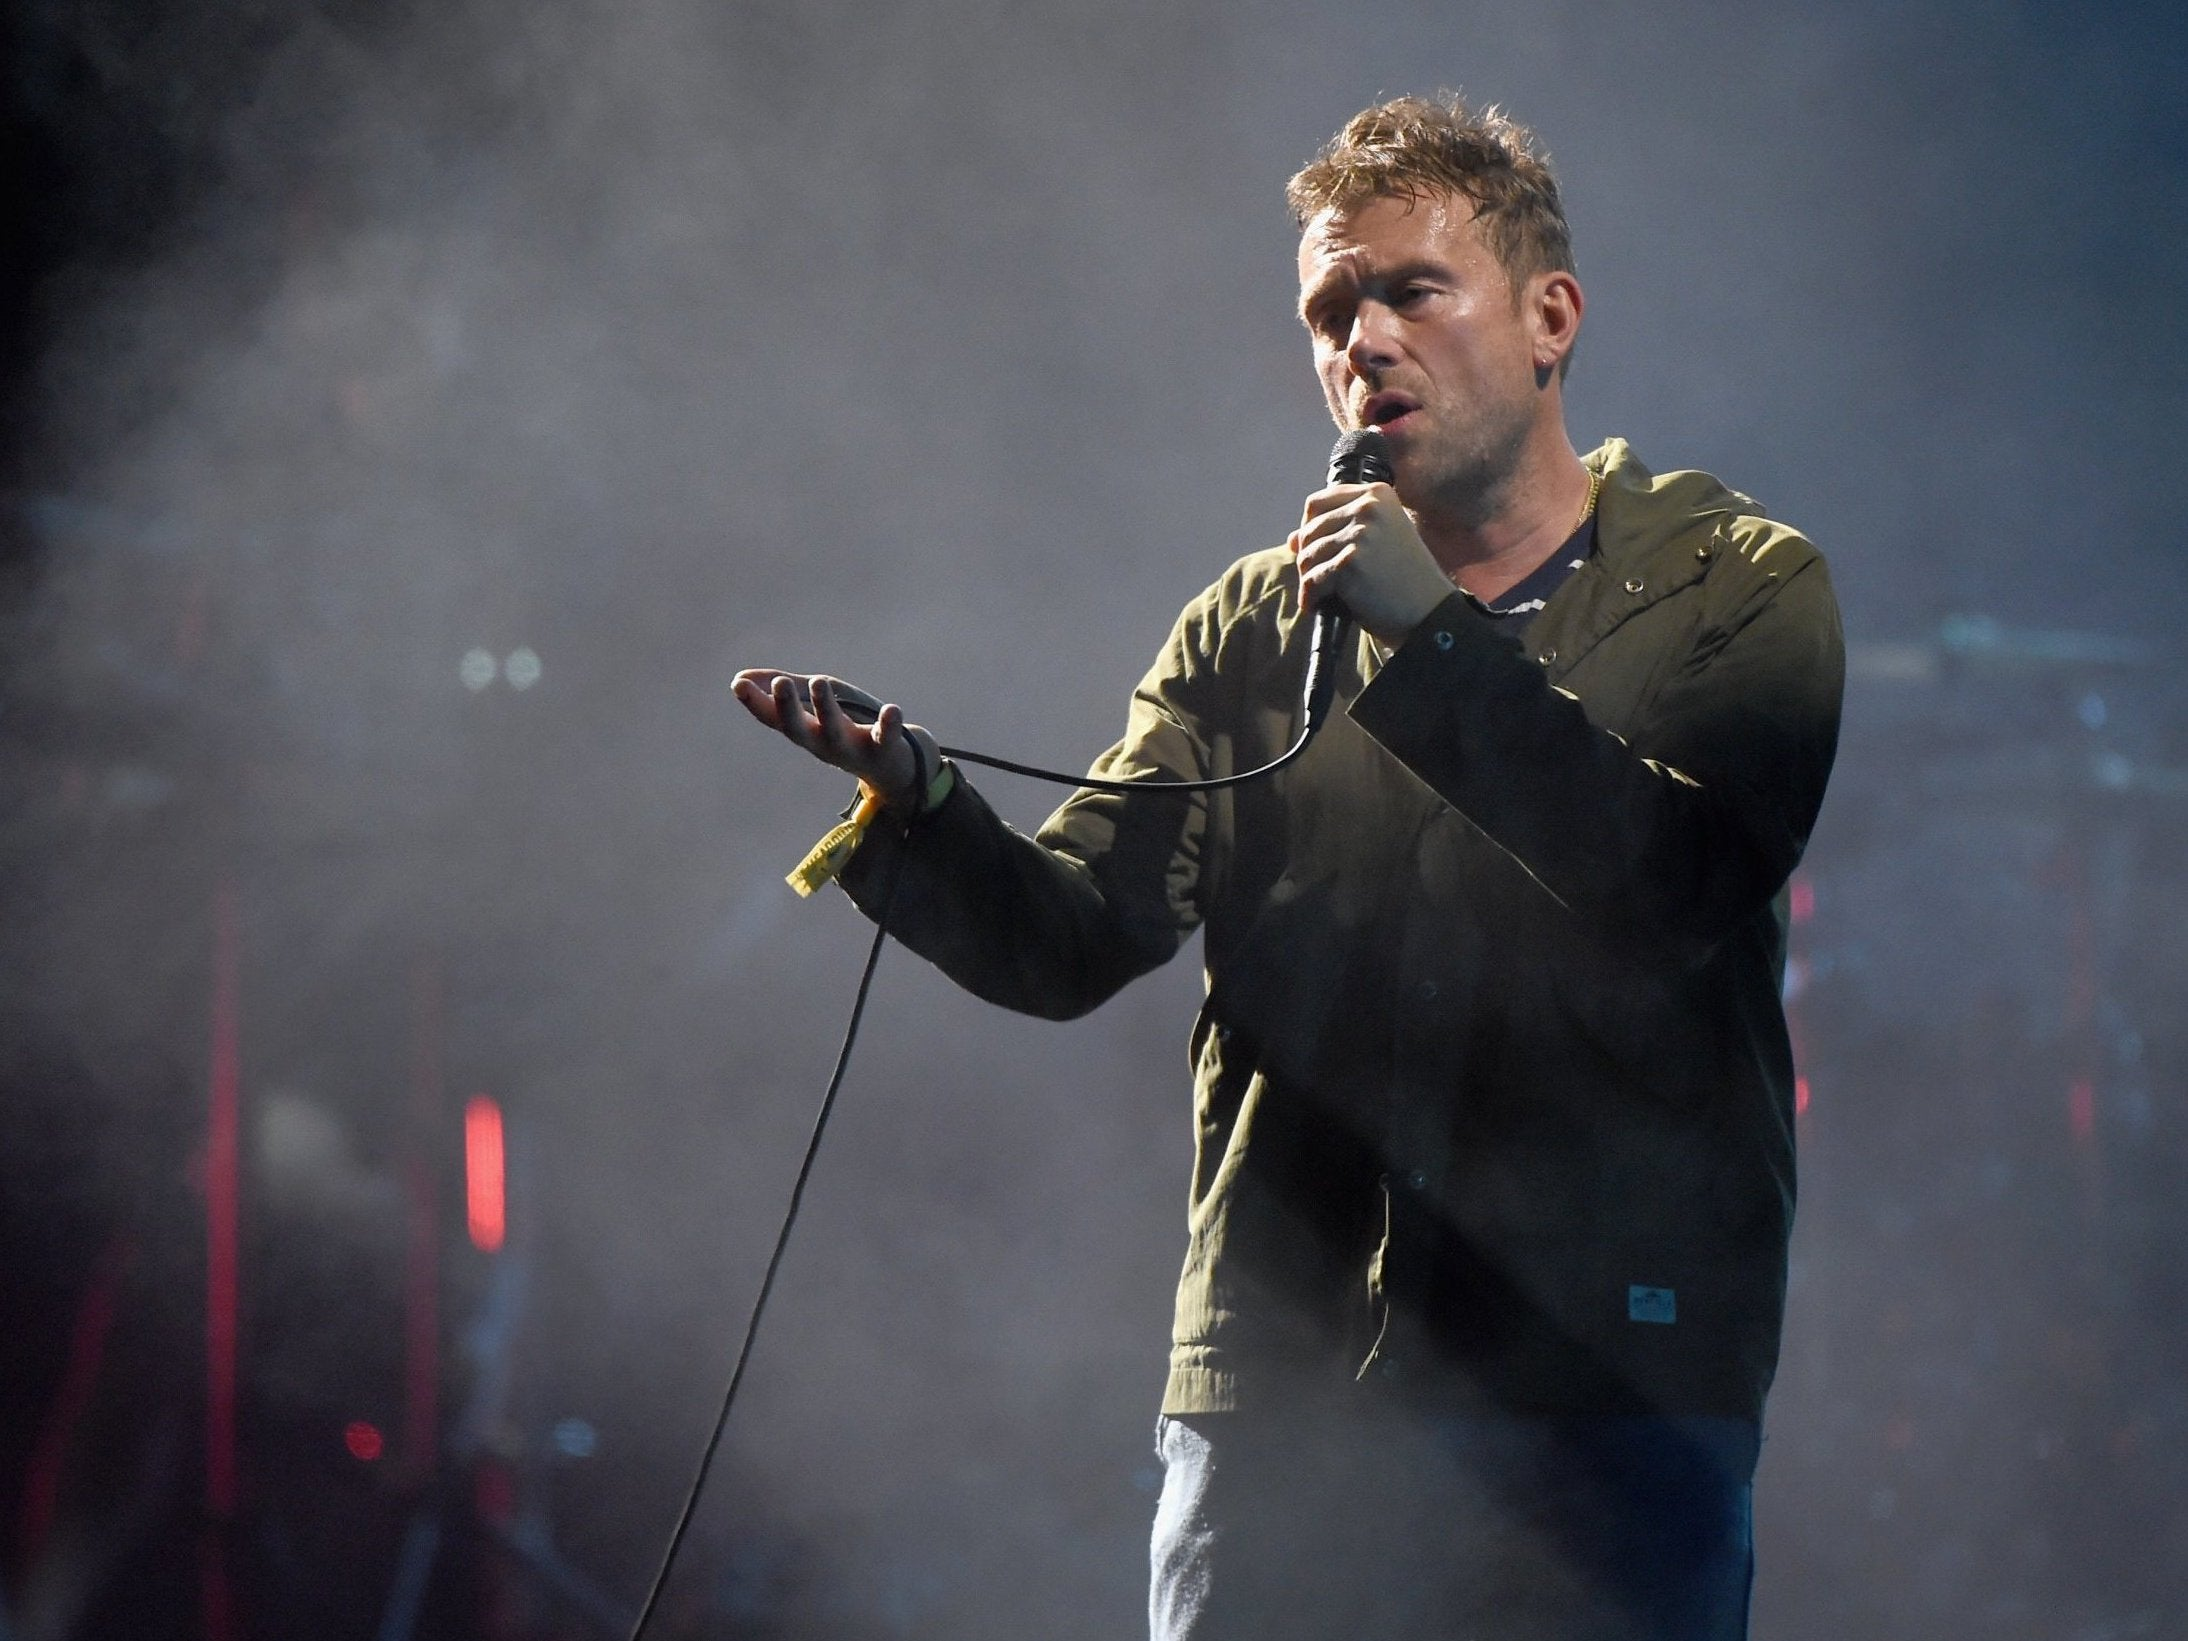 Damon Albarn says music needs to be more political: 'Selfie music isn't sustainable'